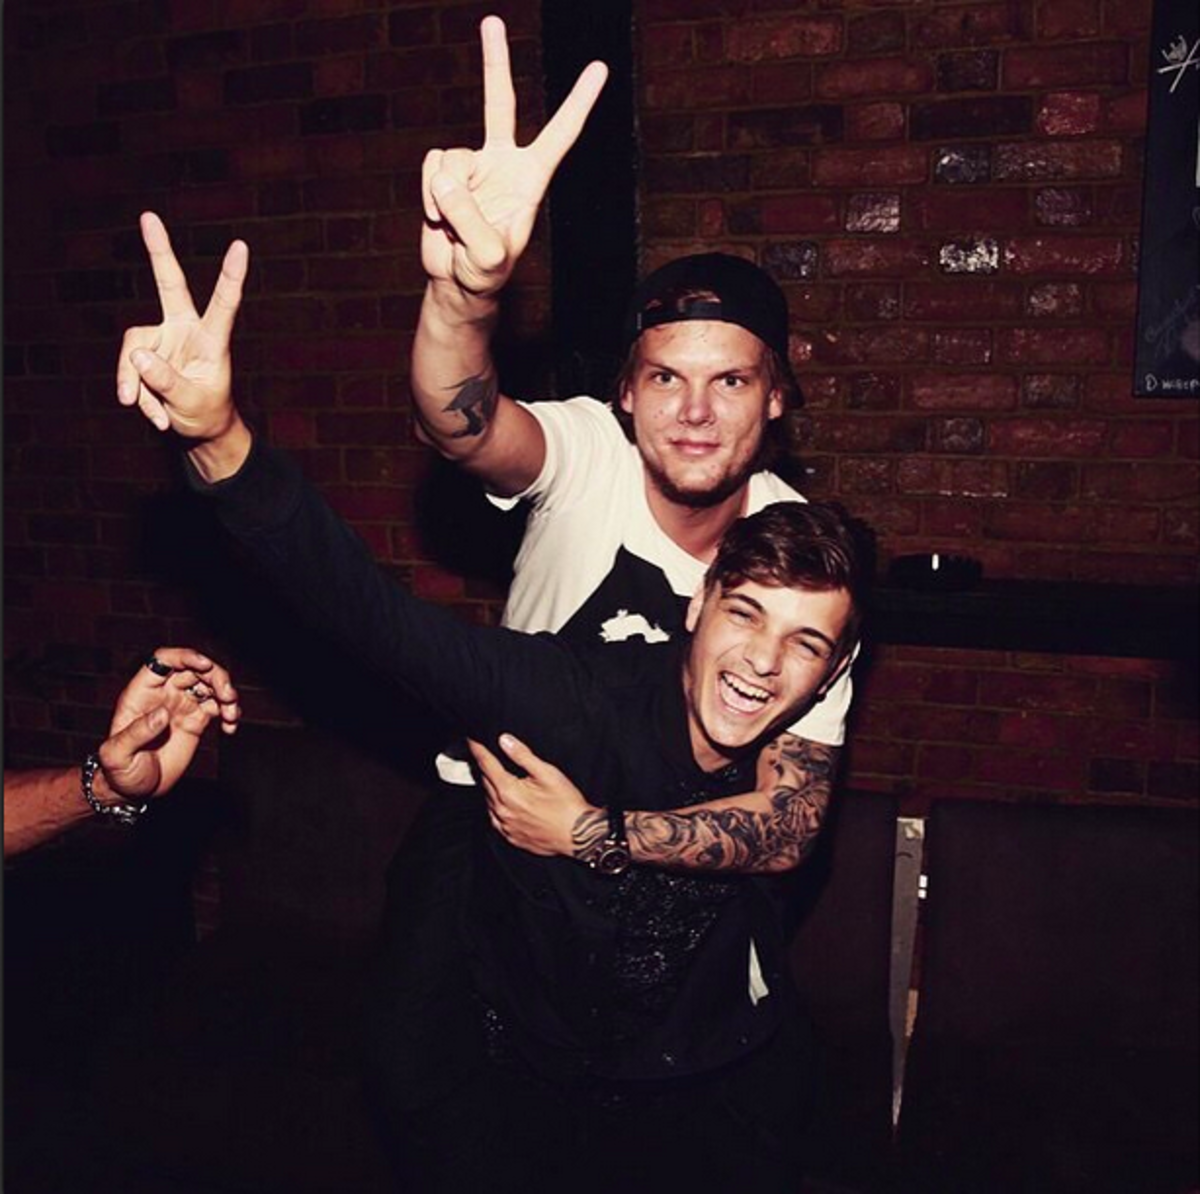 Tom Bergling and his friends